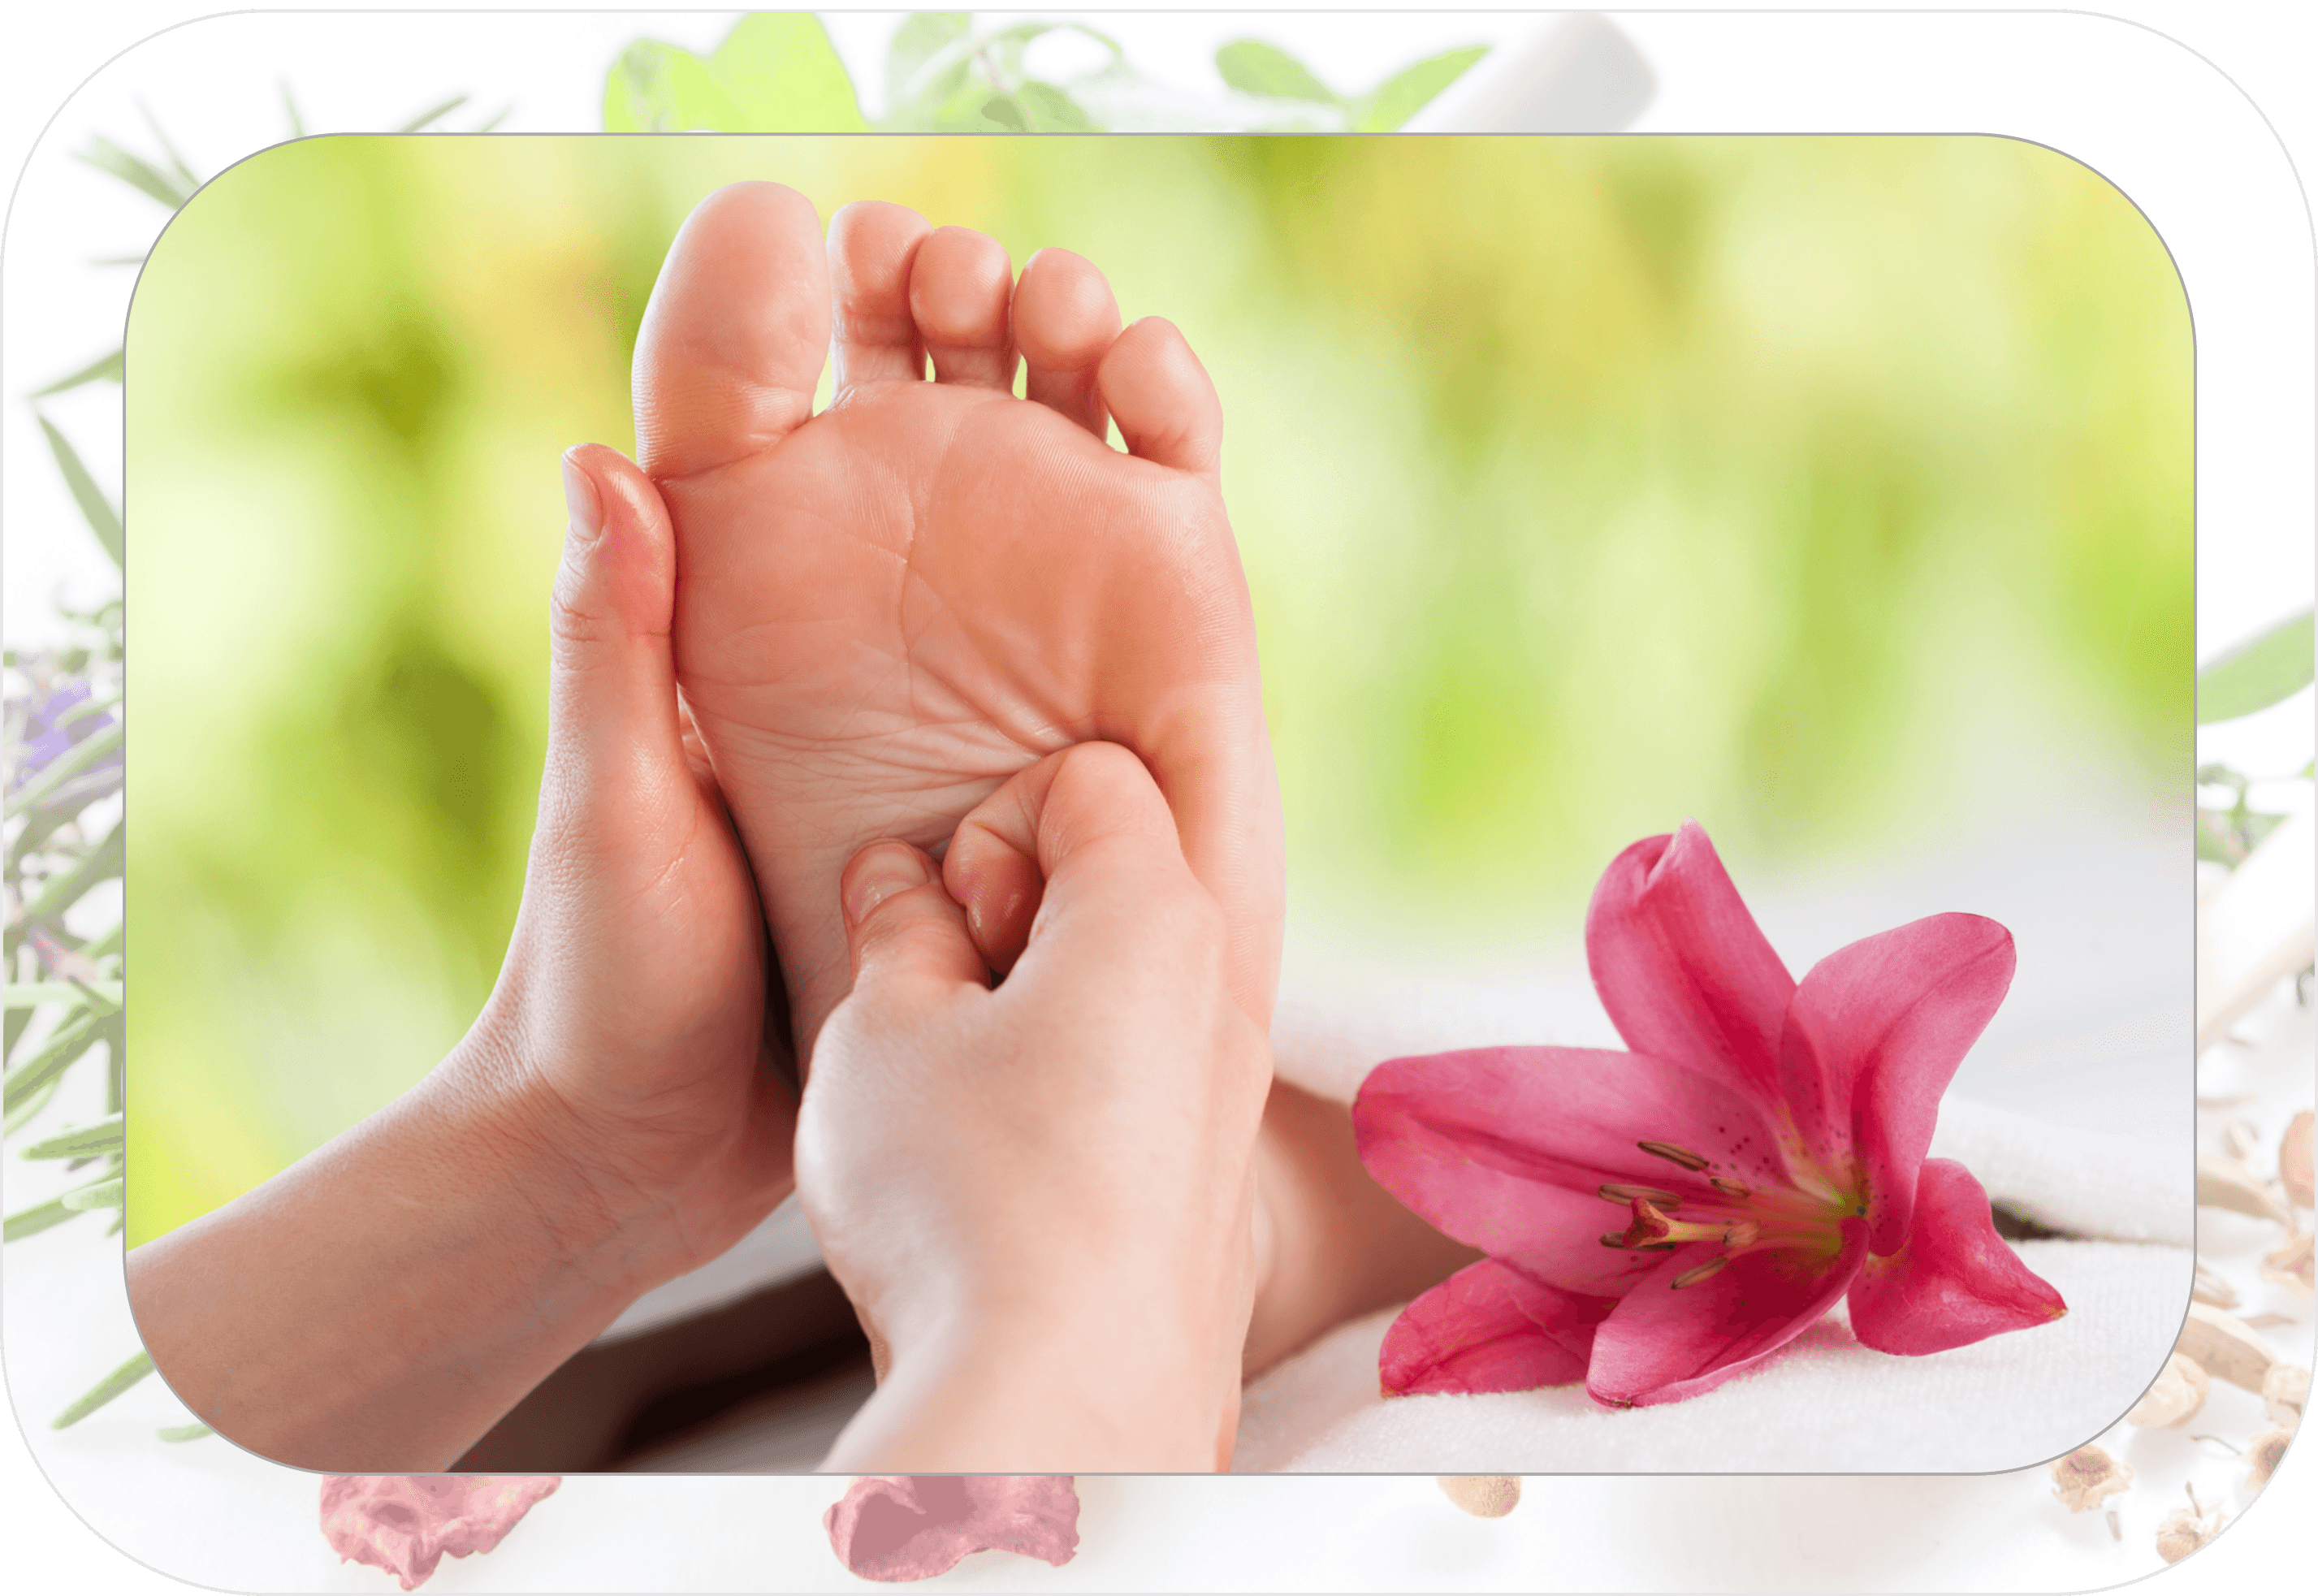 foot massage | you don't have to read v2.0 |Foot Massage